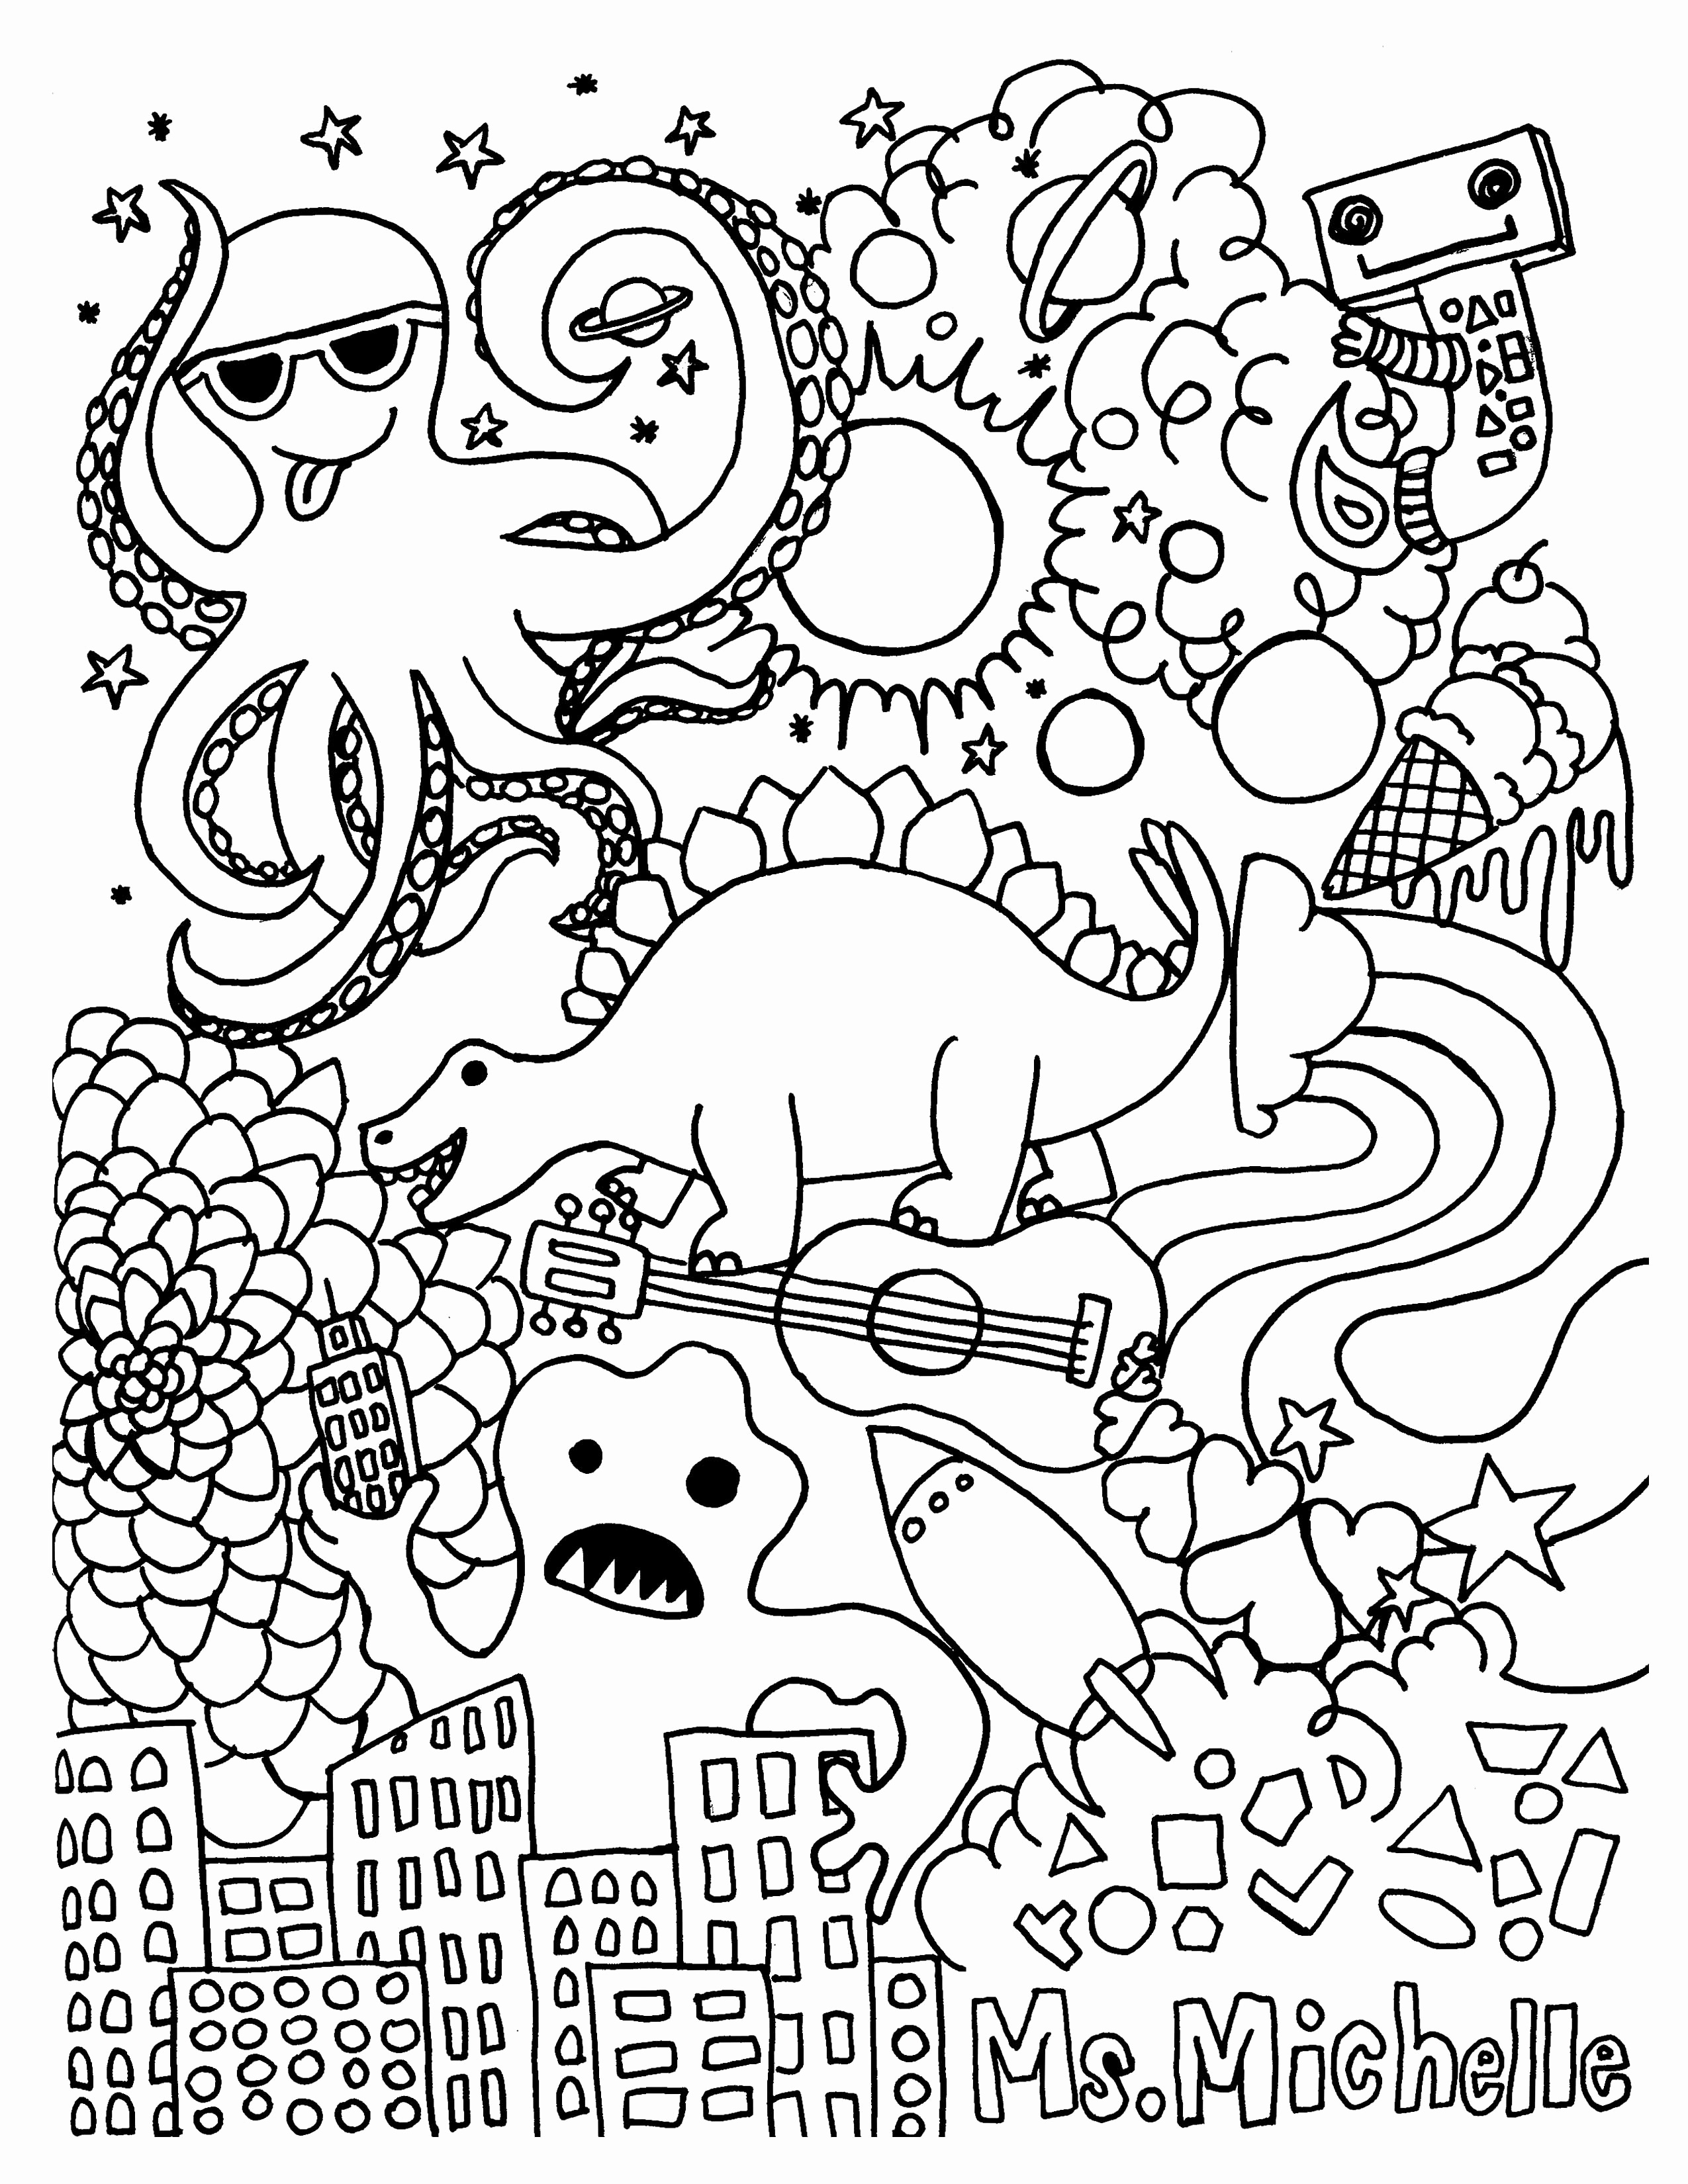 coloring worksheets for grade 3 3rd grade coloring pages free download on clipartmag 3 for worksheets coloring grade